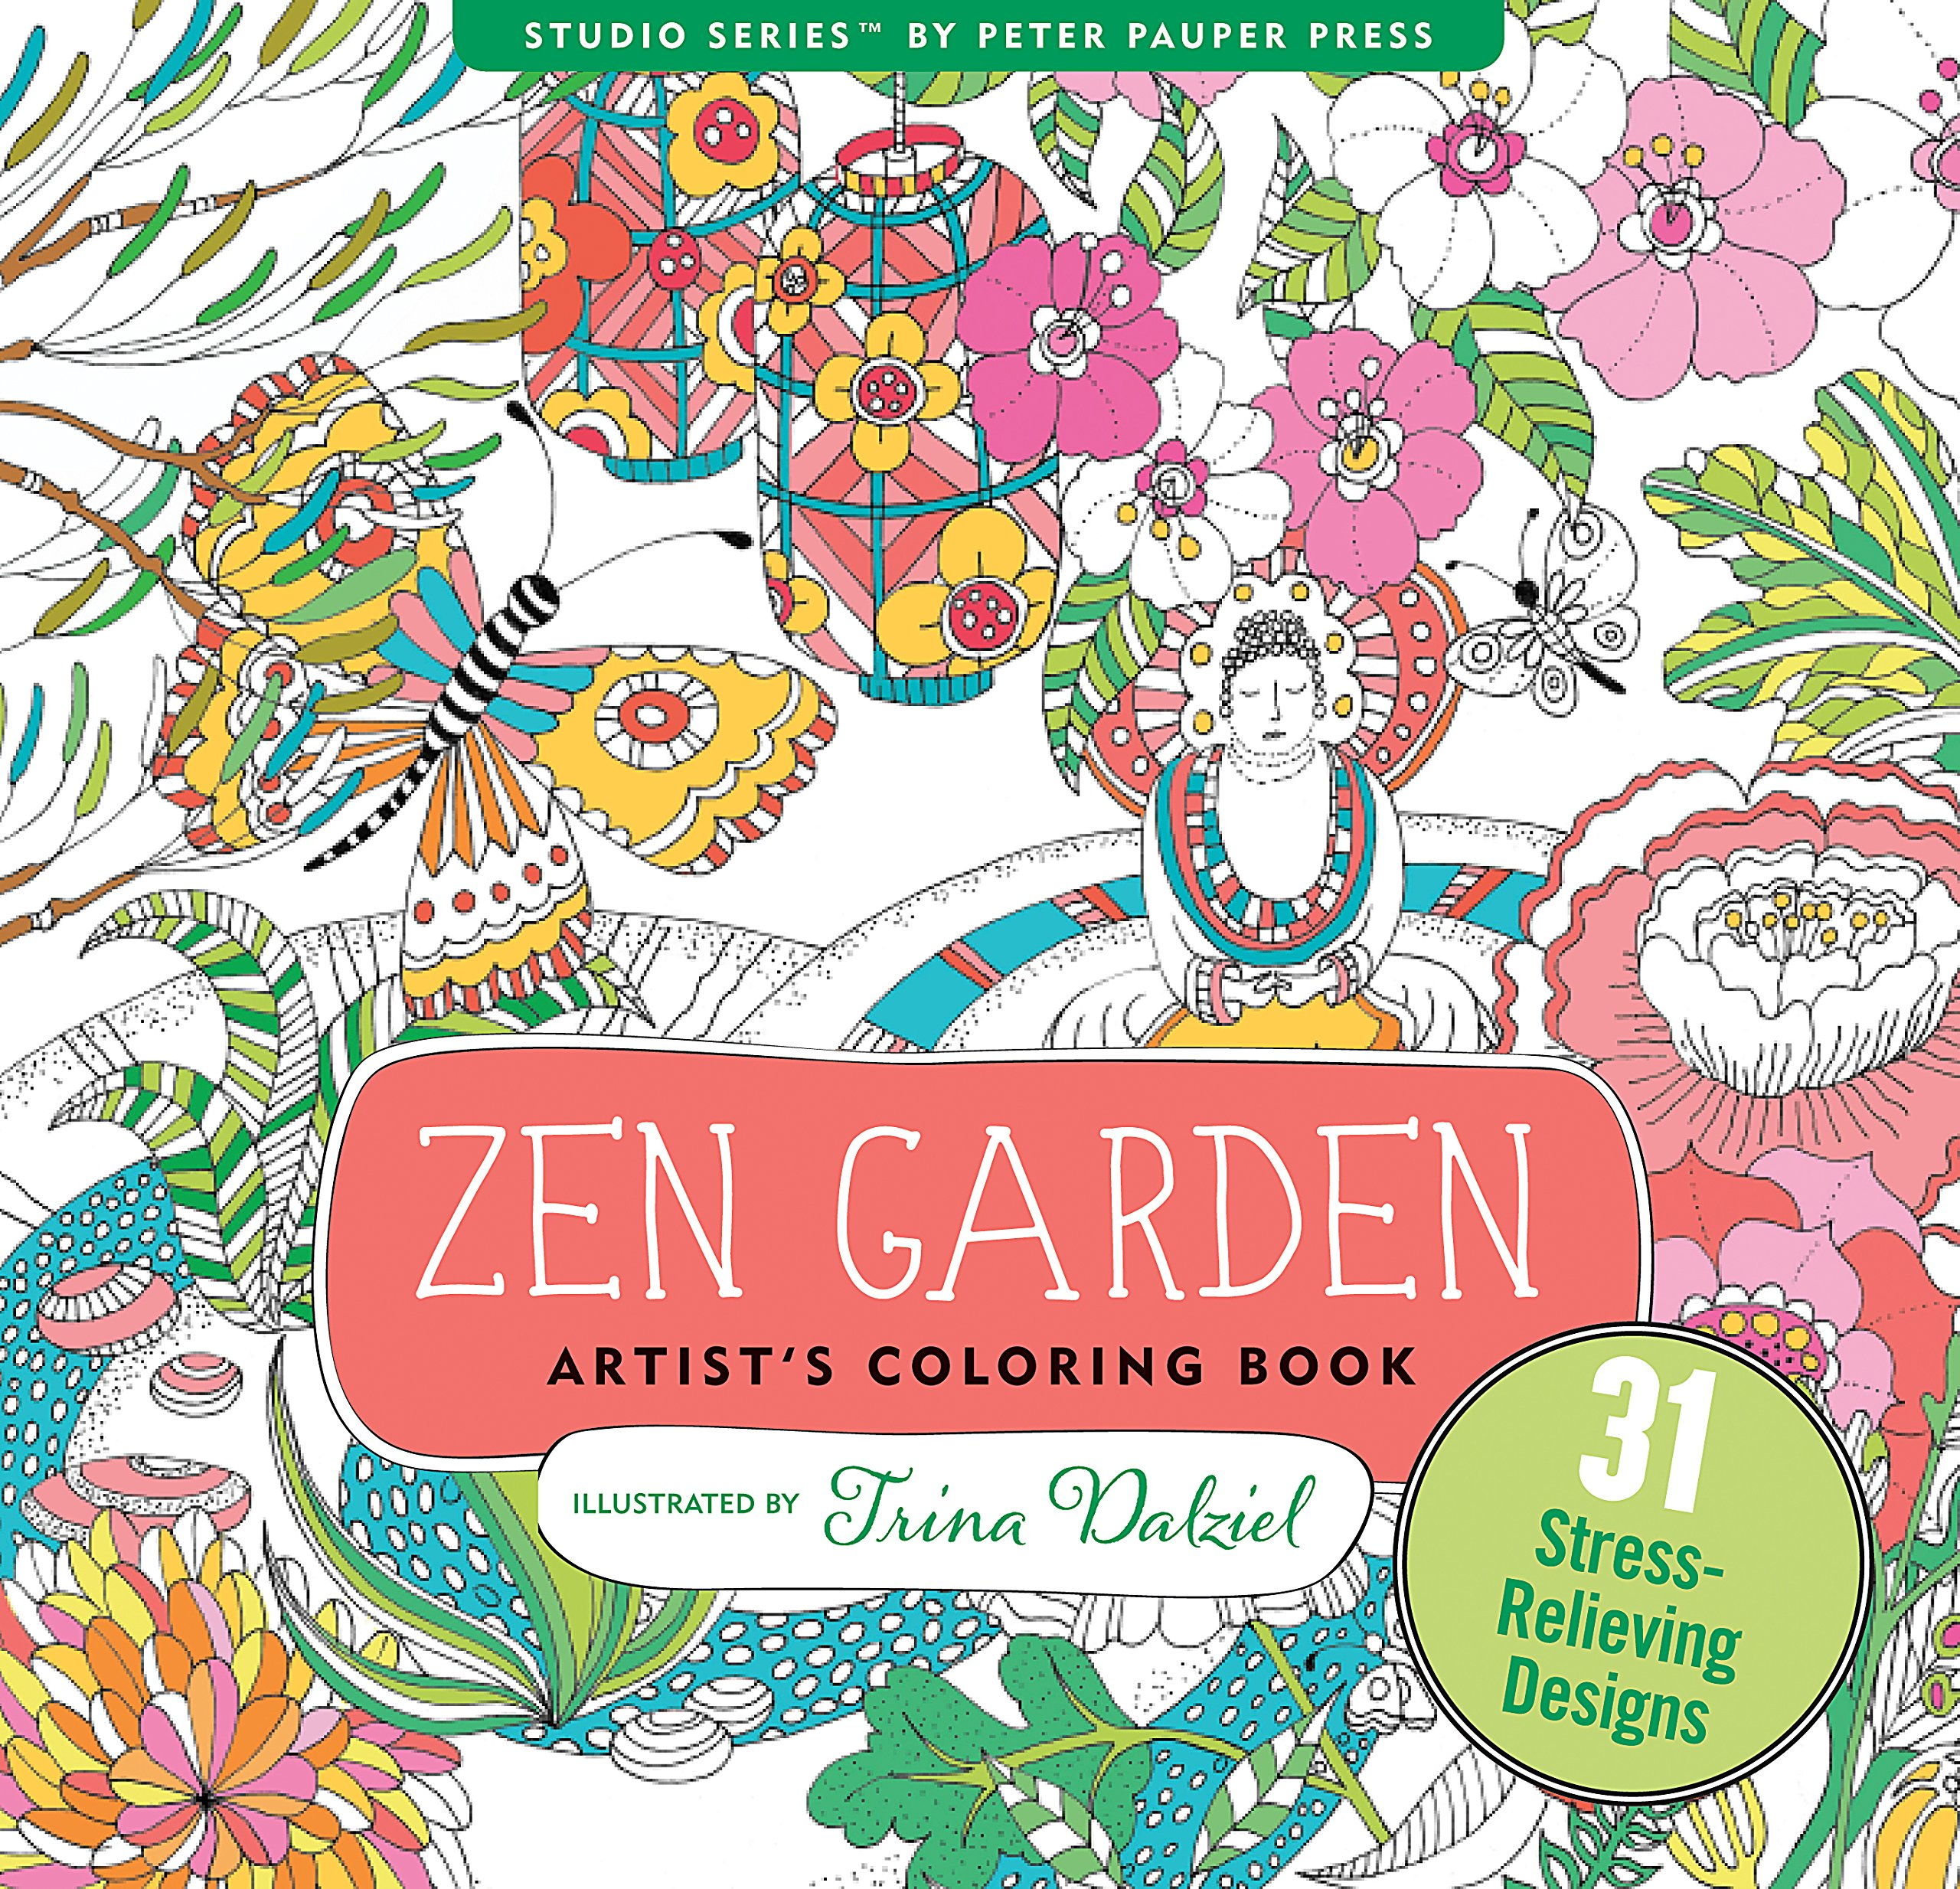 Zen Garden Adult Coloring Book 31 Stress Relieving Designs Artists Books Peter Pauper Press 9781441320063 Amazon